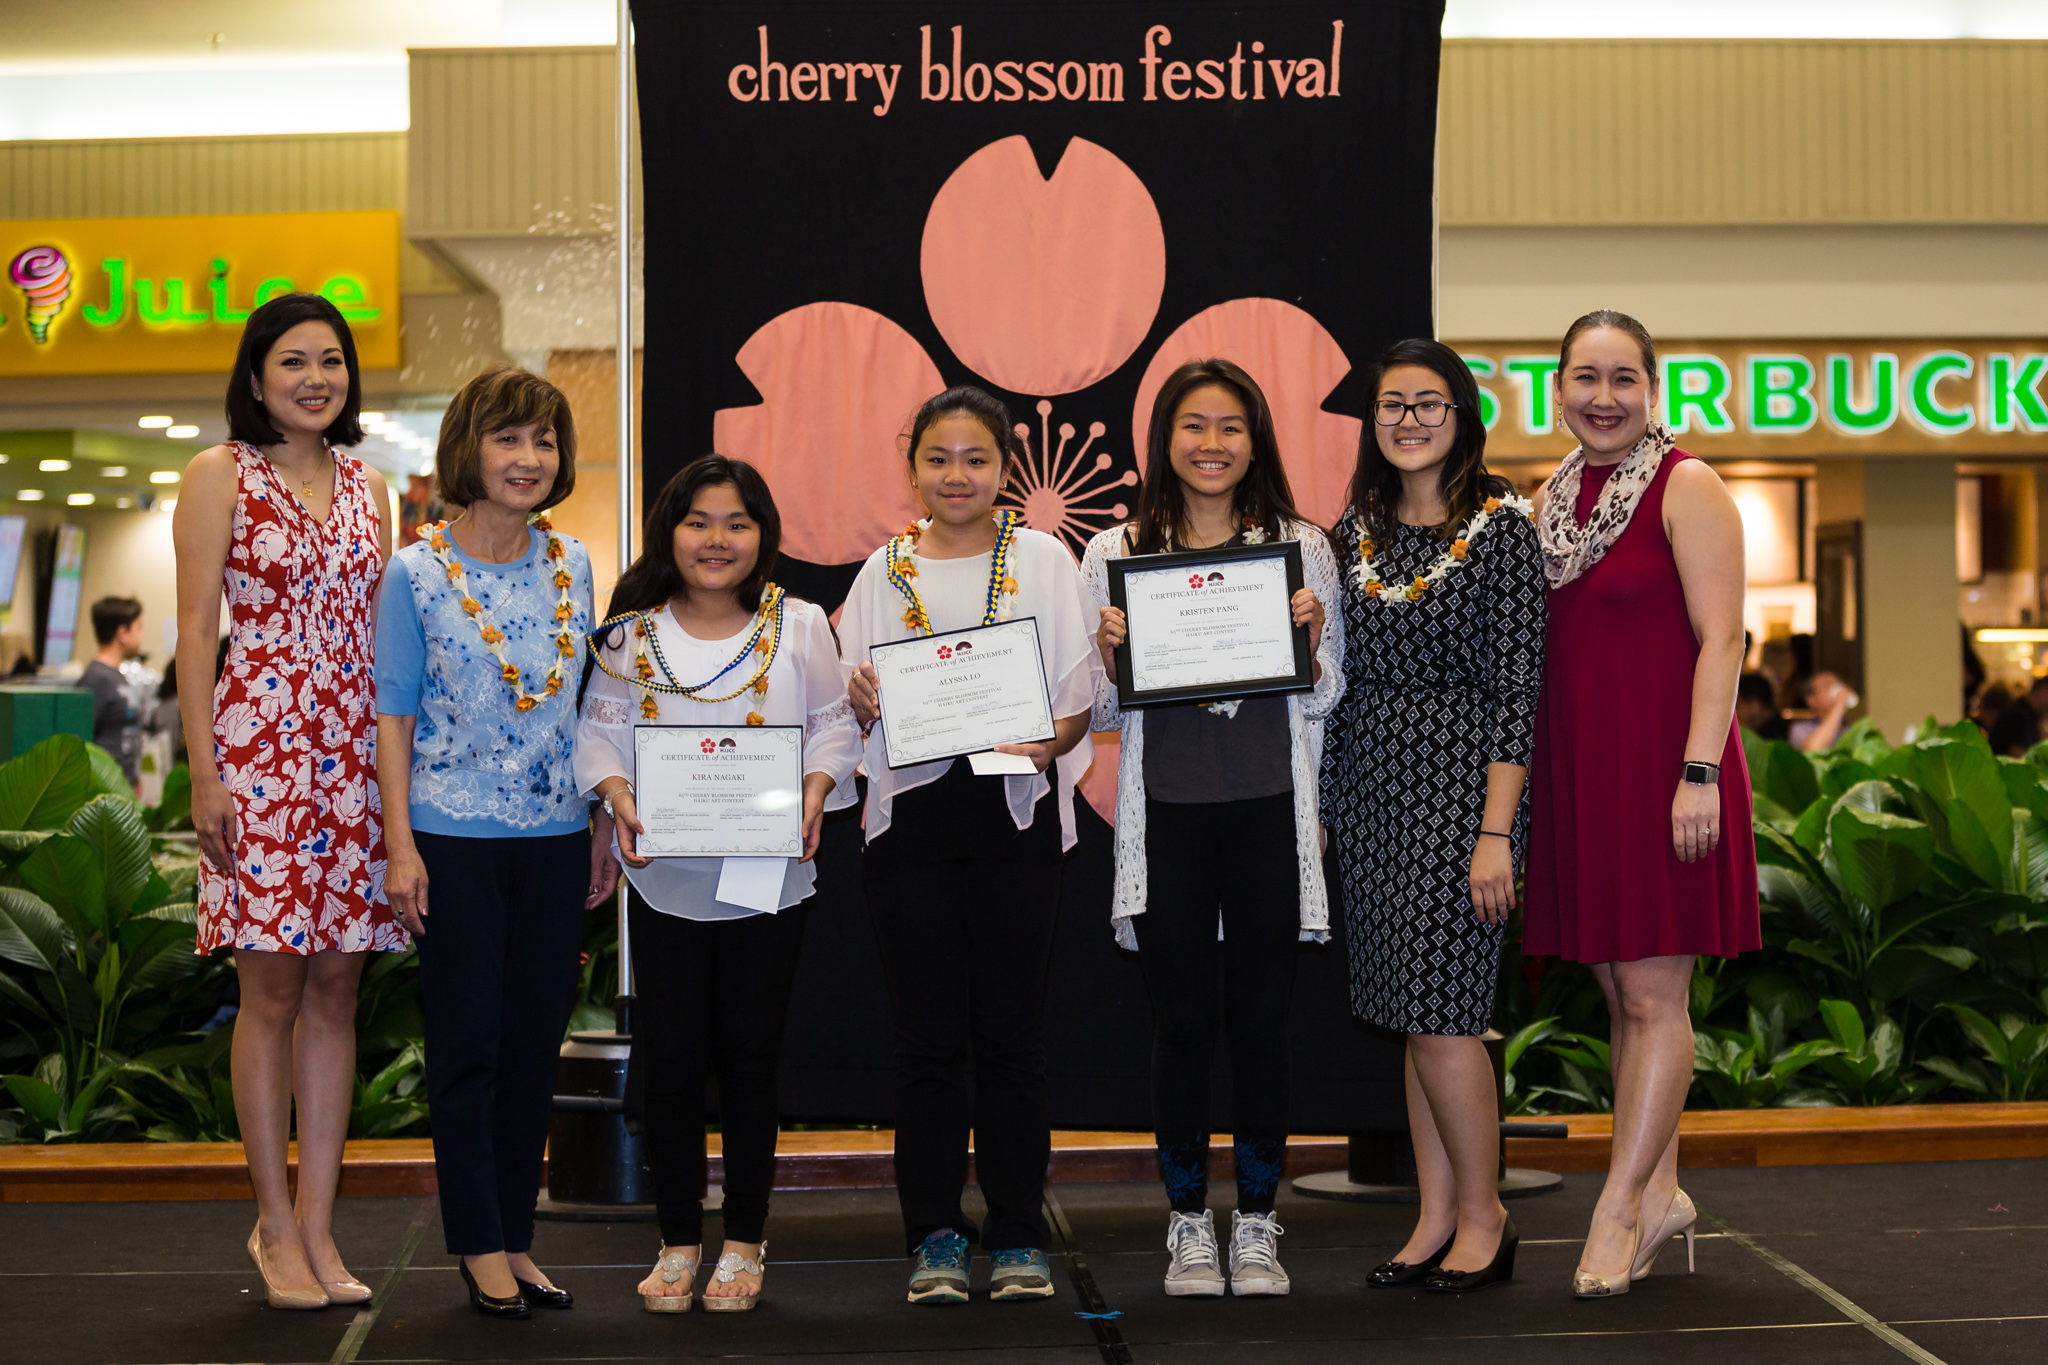 Kristine Wada, 65th CBF general co-chair; Cathy Iwai, president-elect, Japanese Women's Society Foundation; contest winners Kira Nagaki, Alyssa P. Lo, and Kristen Pang; Chelsea Okamoto, 65th CBF Haiku Art Contest chair; and Kristin Alm,  65th CBF general co-chair